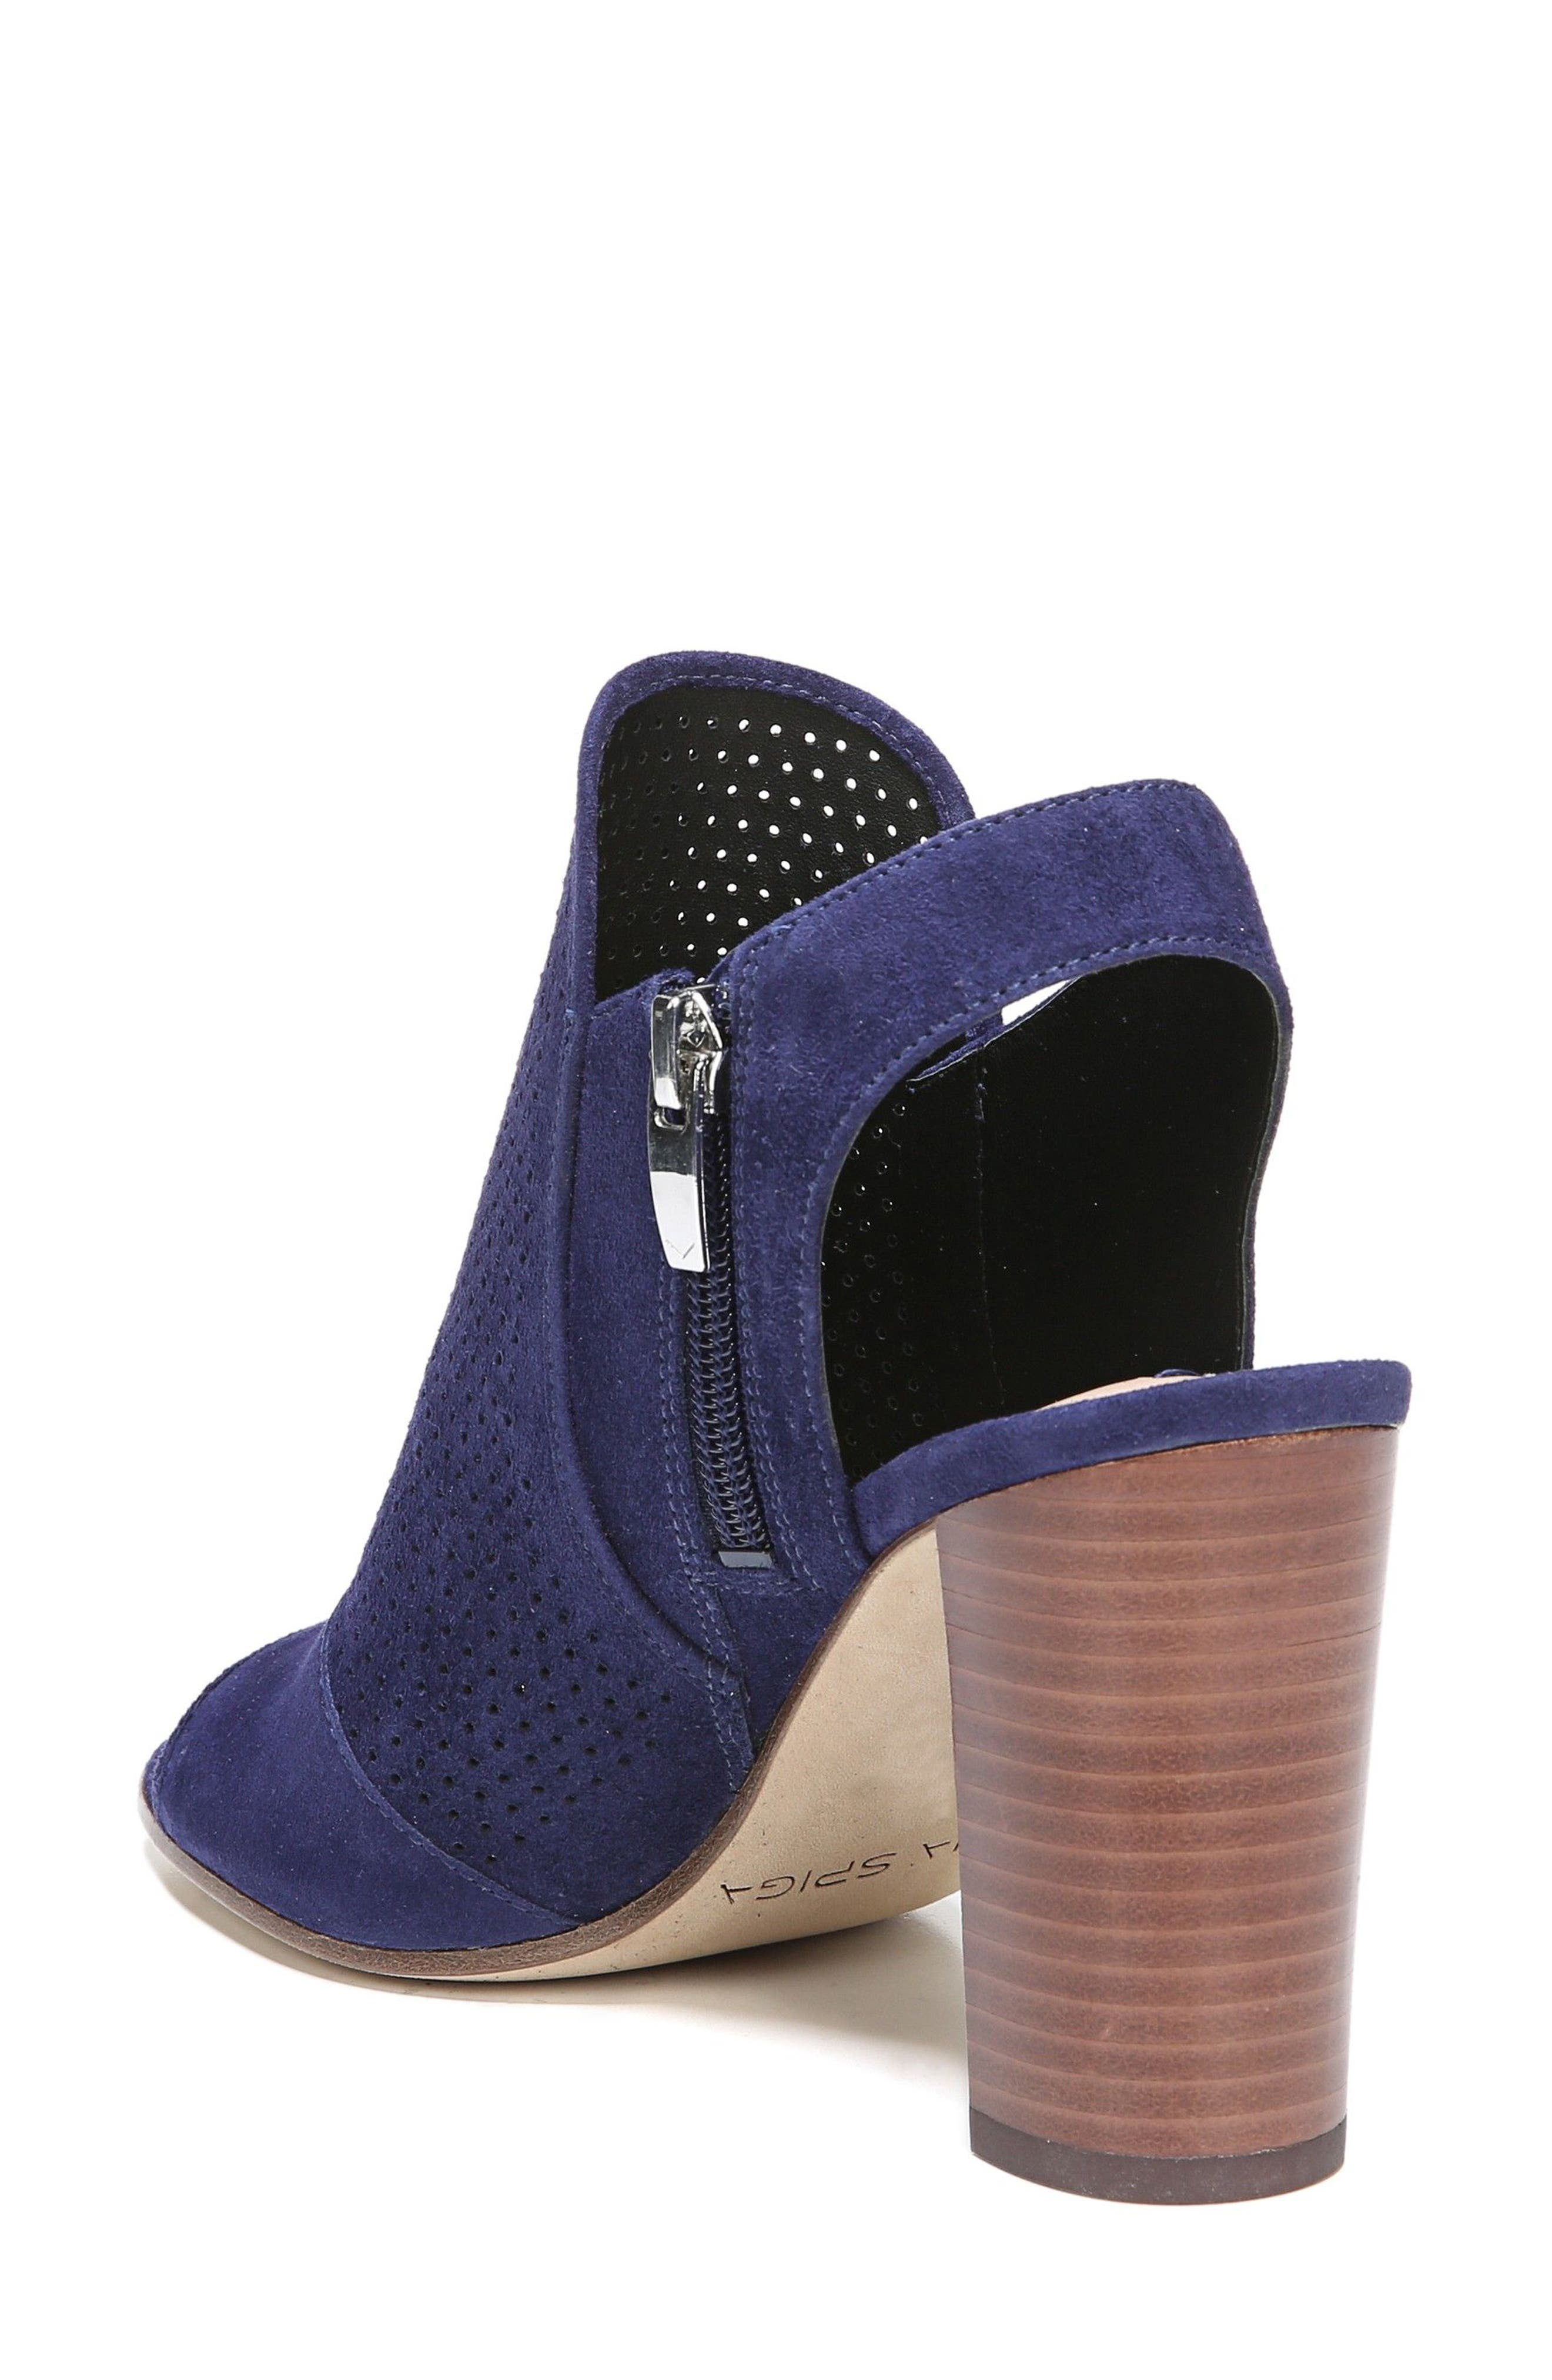 Gaze Block Heel Sandal,                             Alternate thumbnail 2, color,                             Marina Blue Suede